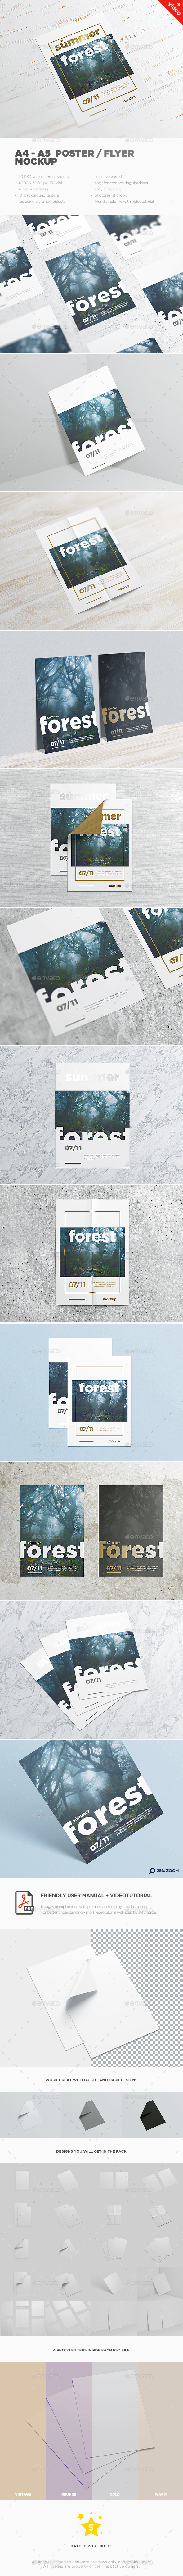 A4 - A5 Poster / Flyer-MockUp  - Posters Print